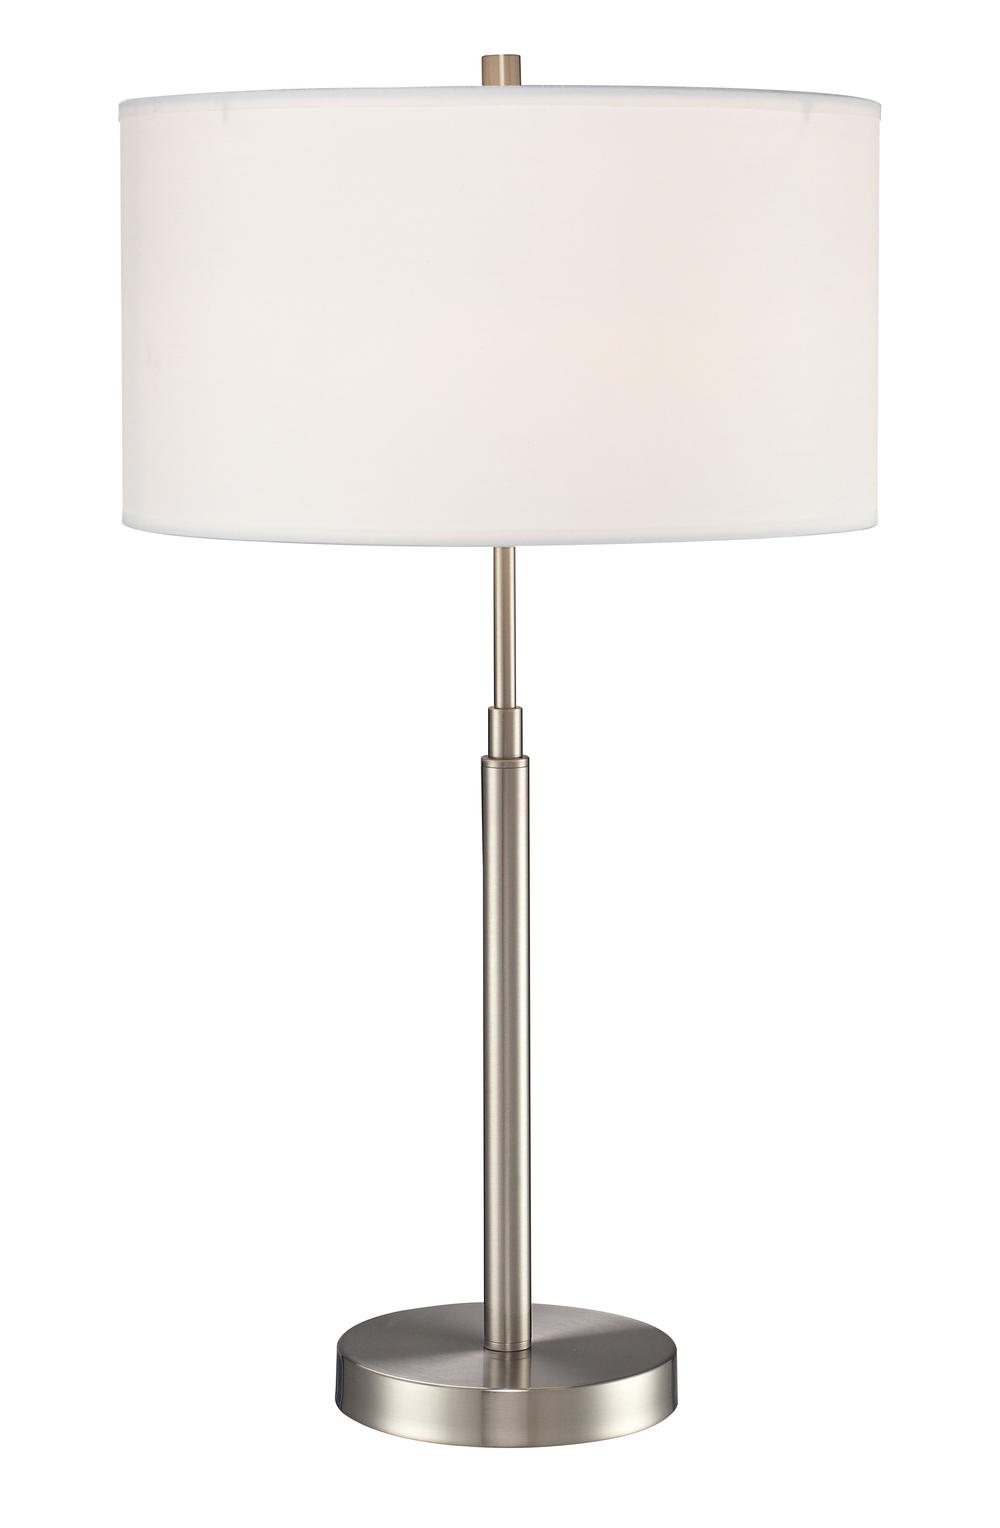 10019 | EMPIRE TABLE LAMP